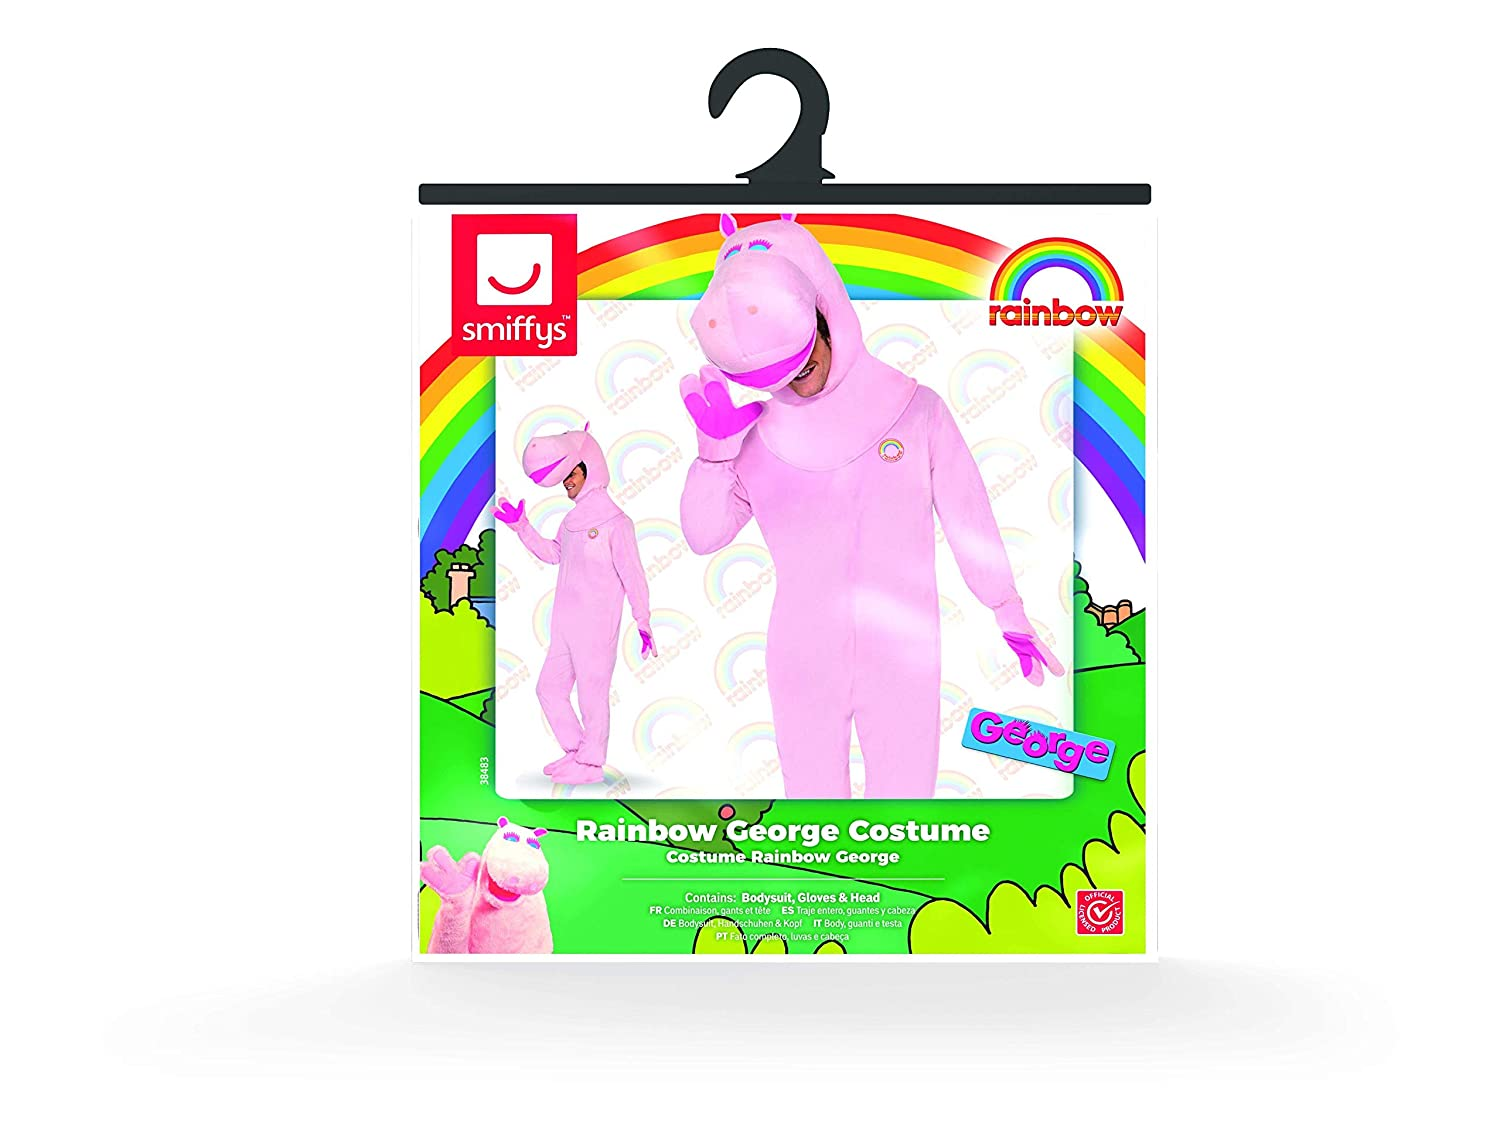 Amazon.com: Rainbow George Costume: Clothing